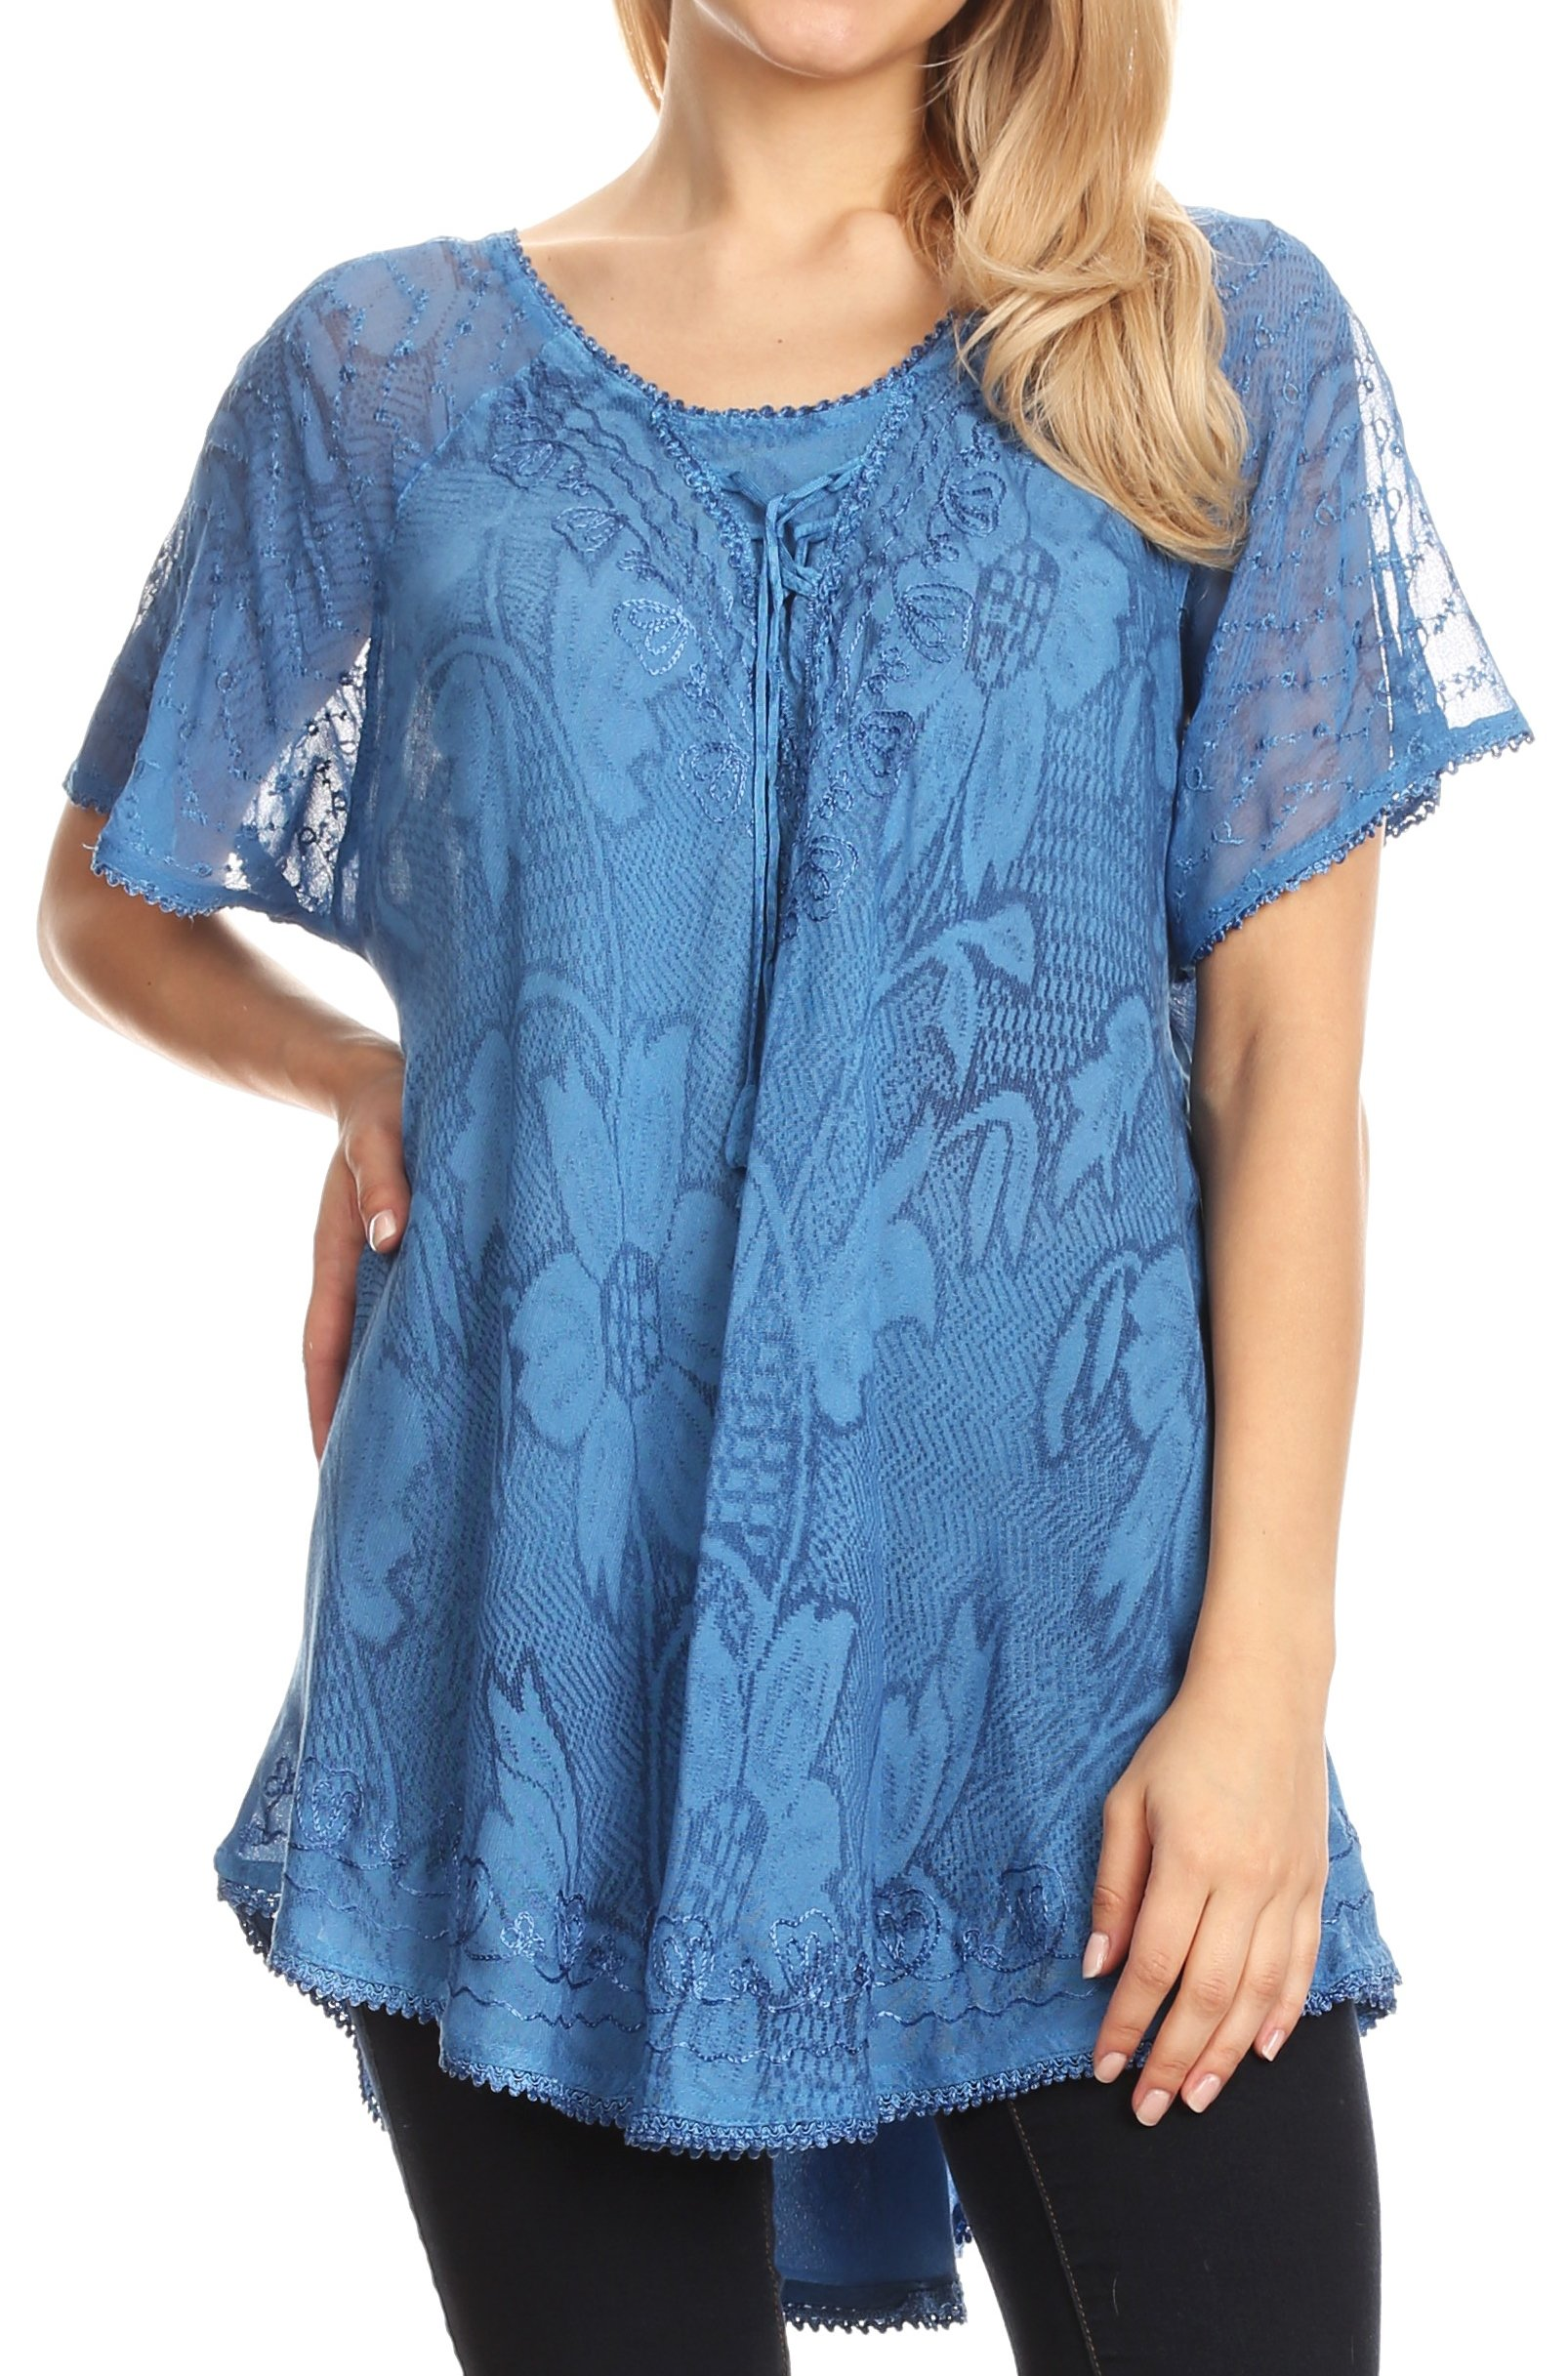 Sakkas 16788 - Maliky Wide Corset Neck Floral Embroidered Cap Sleeve Blouse Top Shirt - Blue - OSP